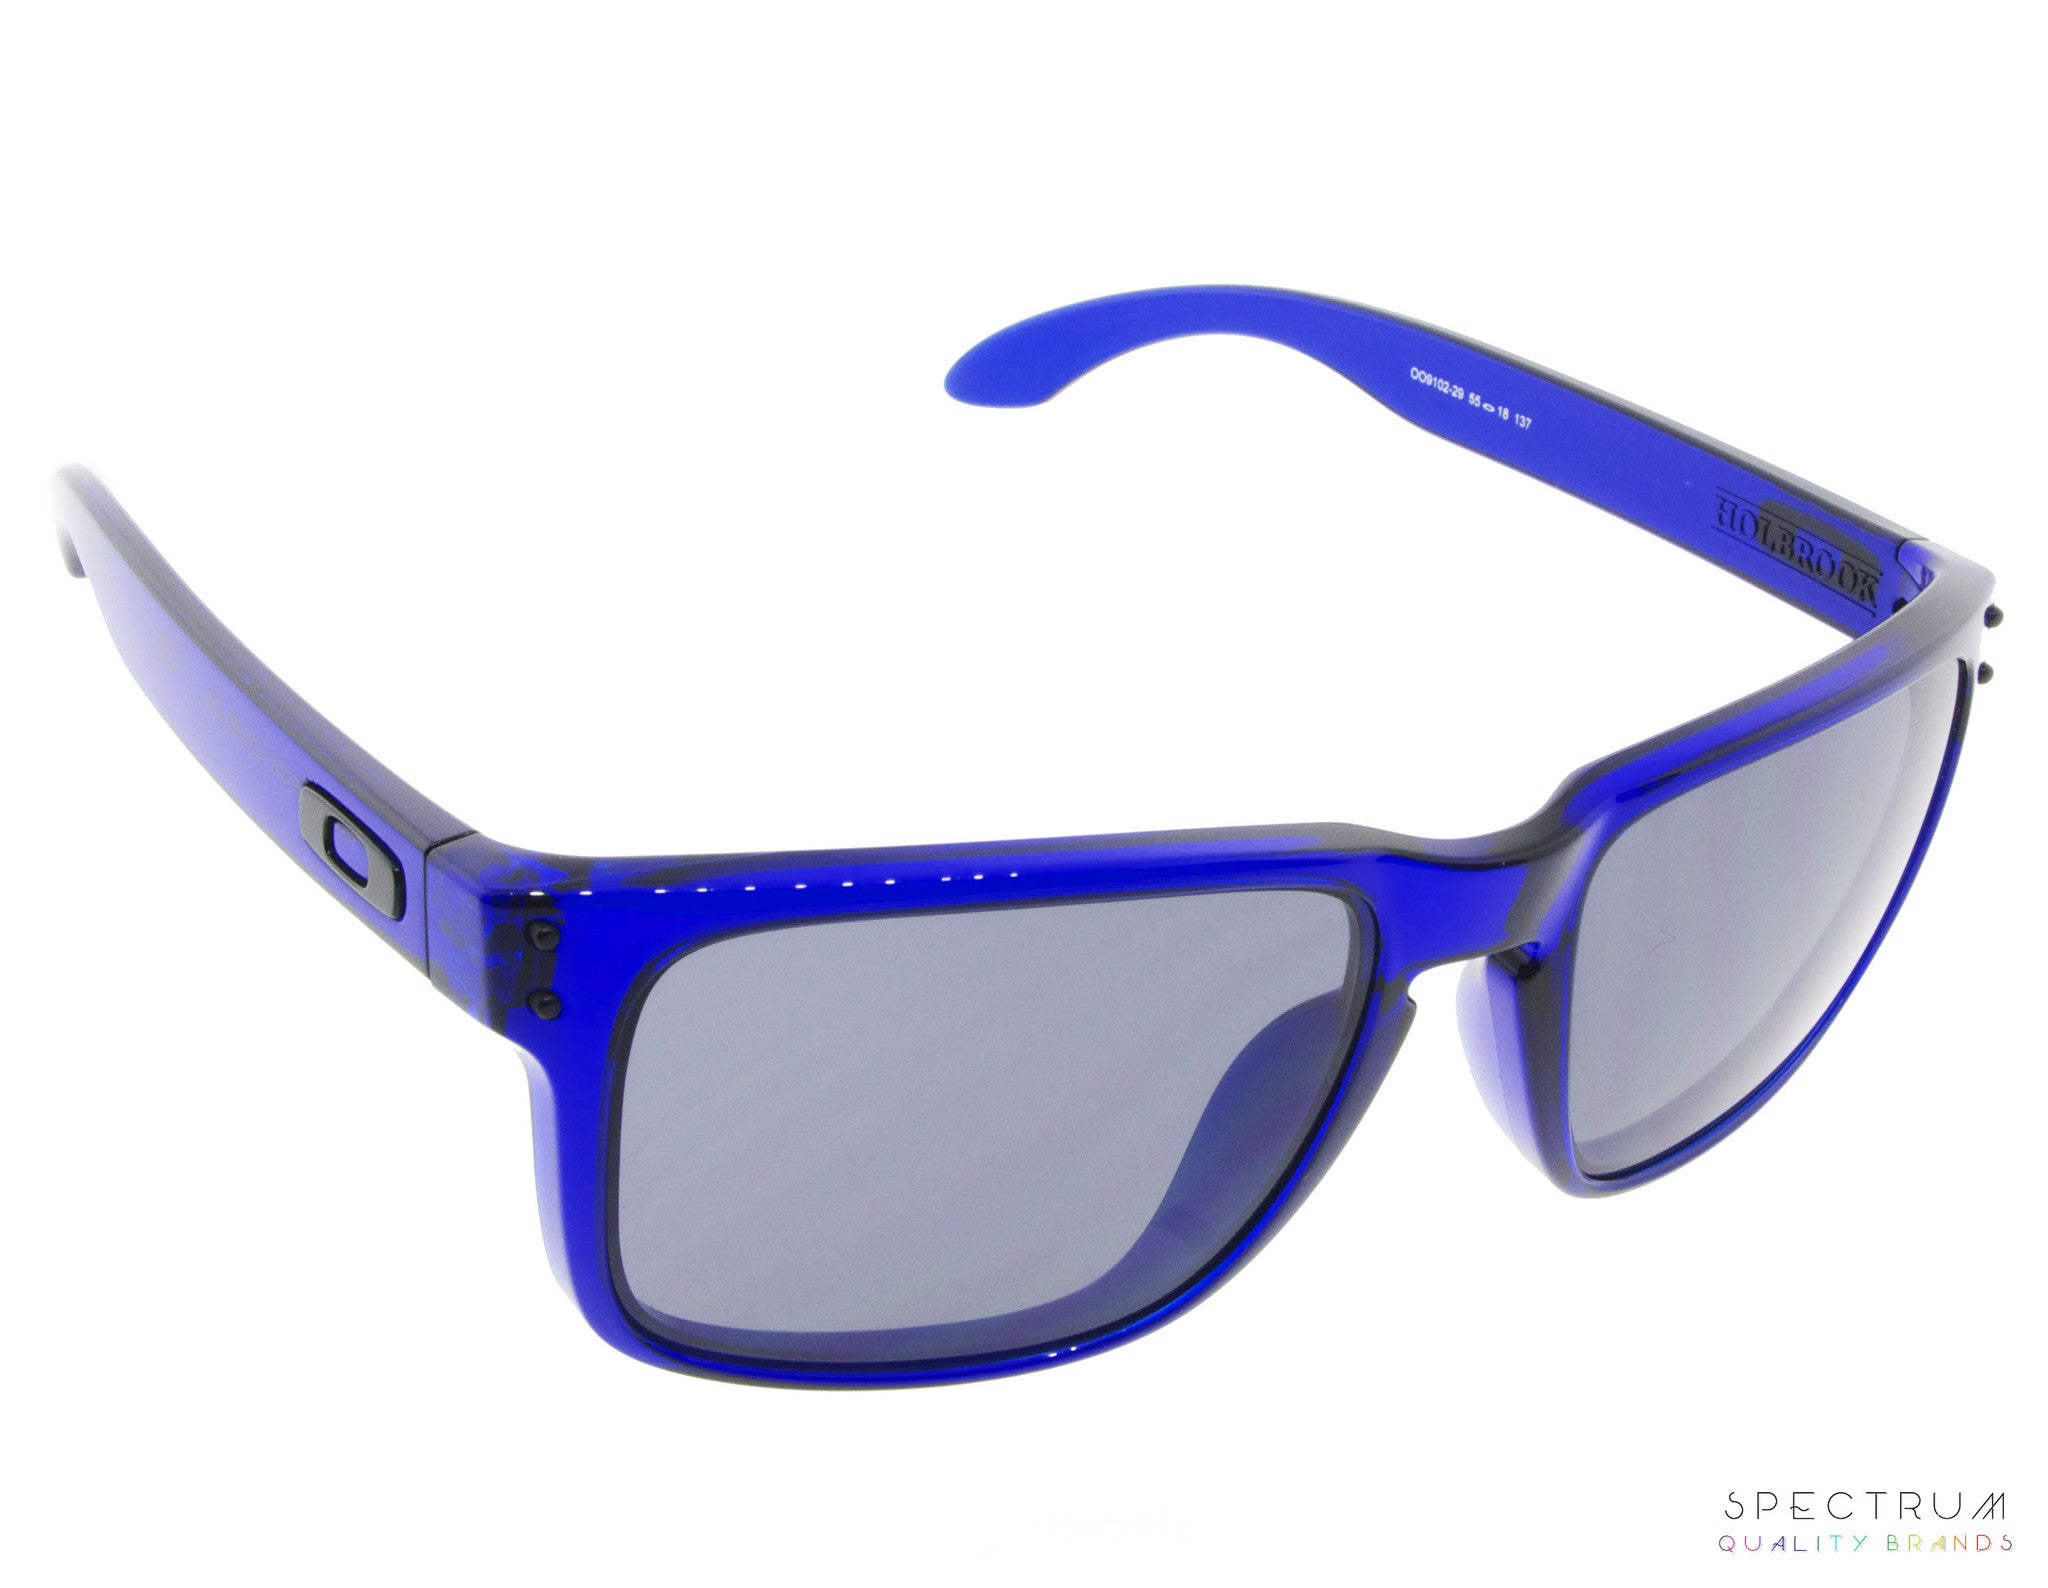 bdc2acf8b02 Oakley Sunglasses Holbrook OO9102 - 29 Crystal Blue Frames with Grey L -  Spectrum Eyewear